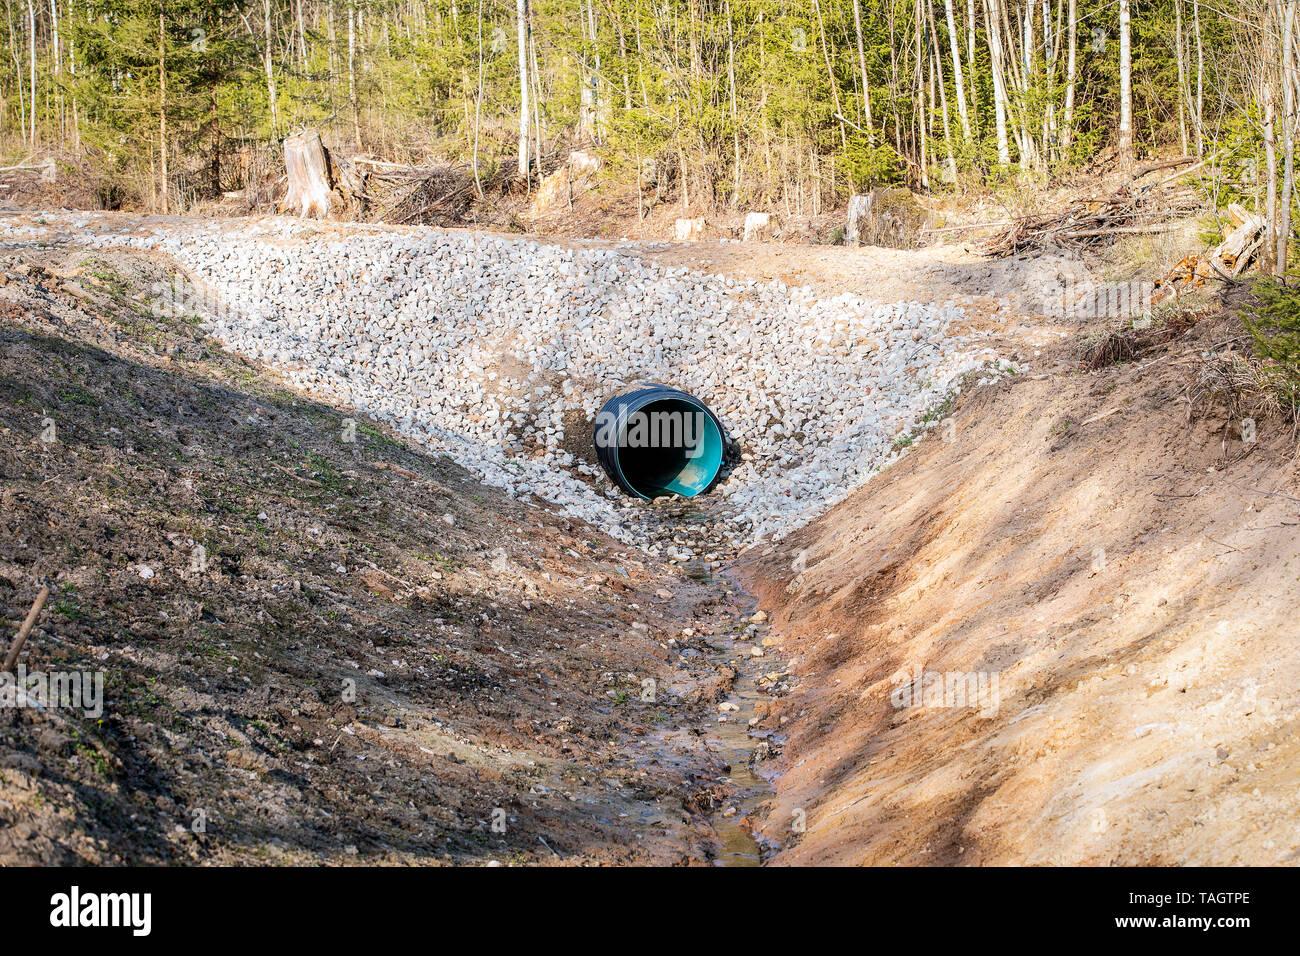 Culvert tube in the countryside - Stock Image